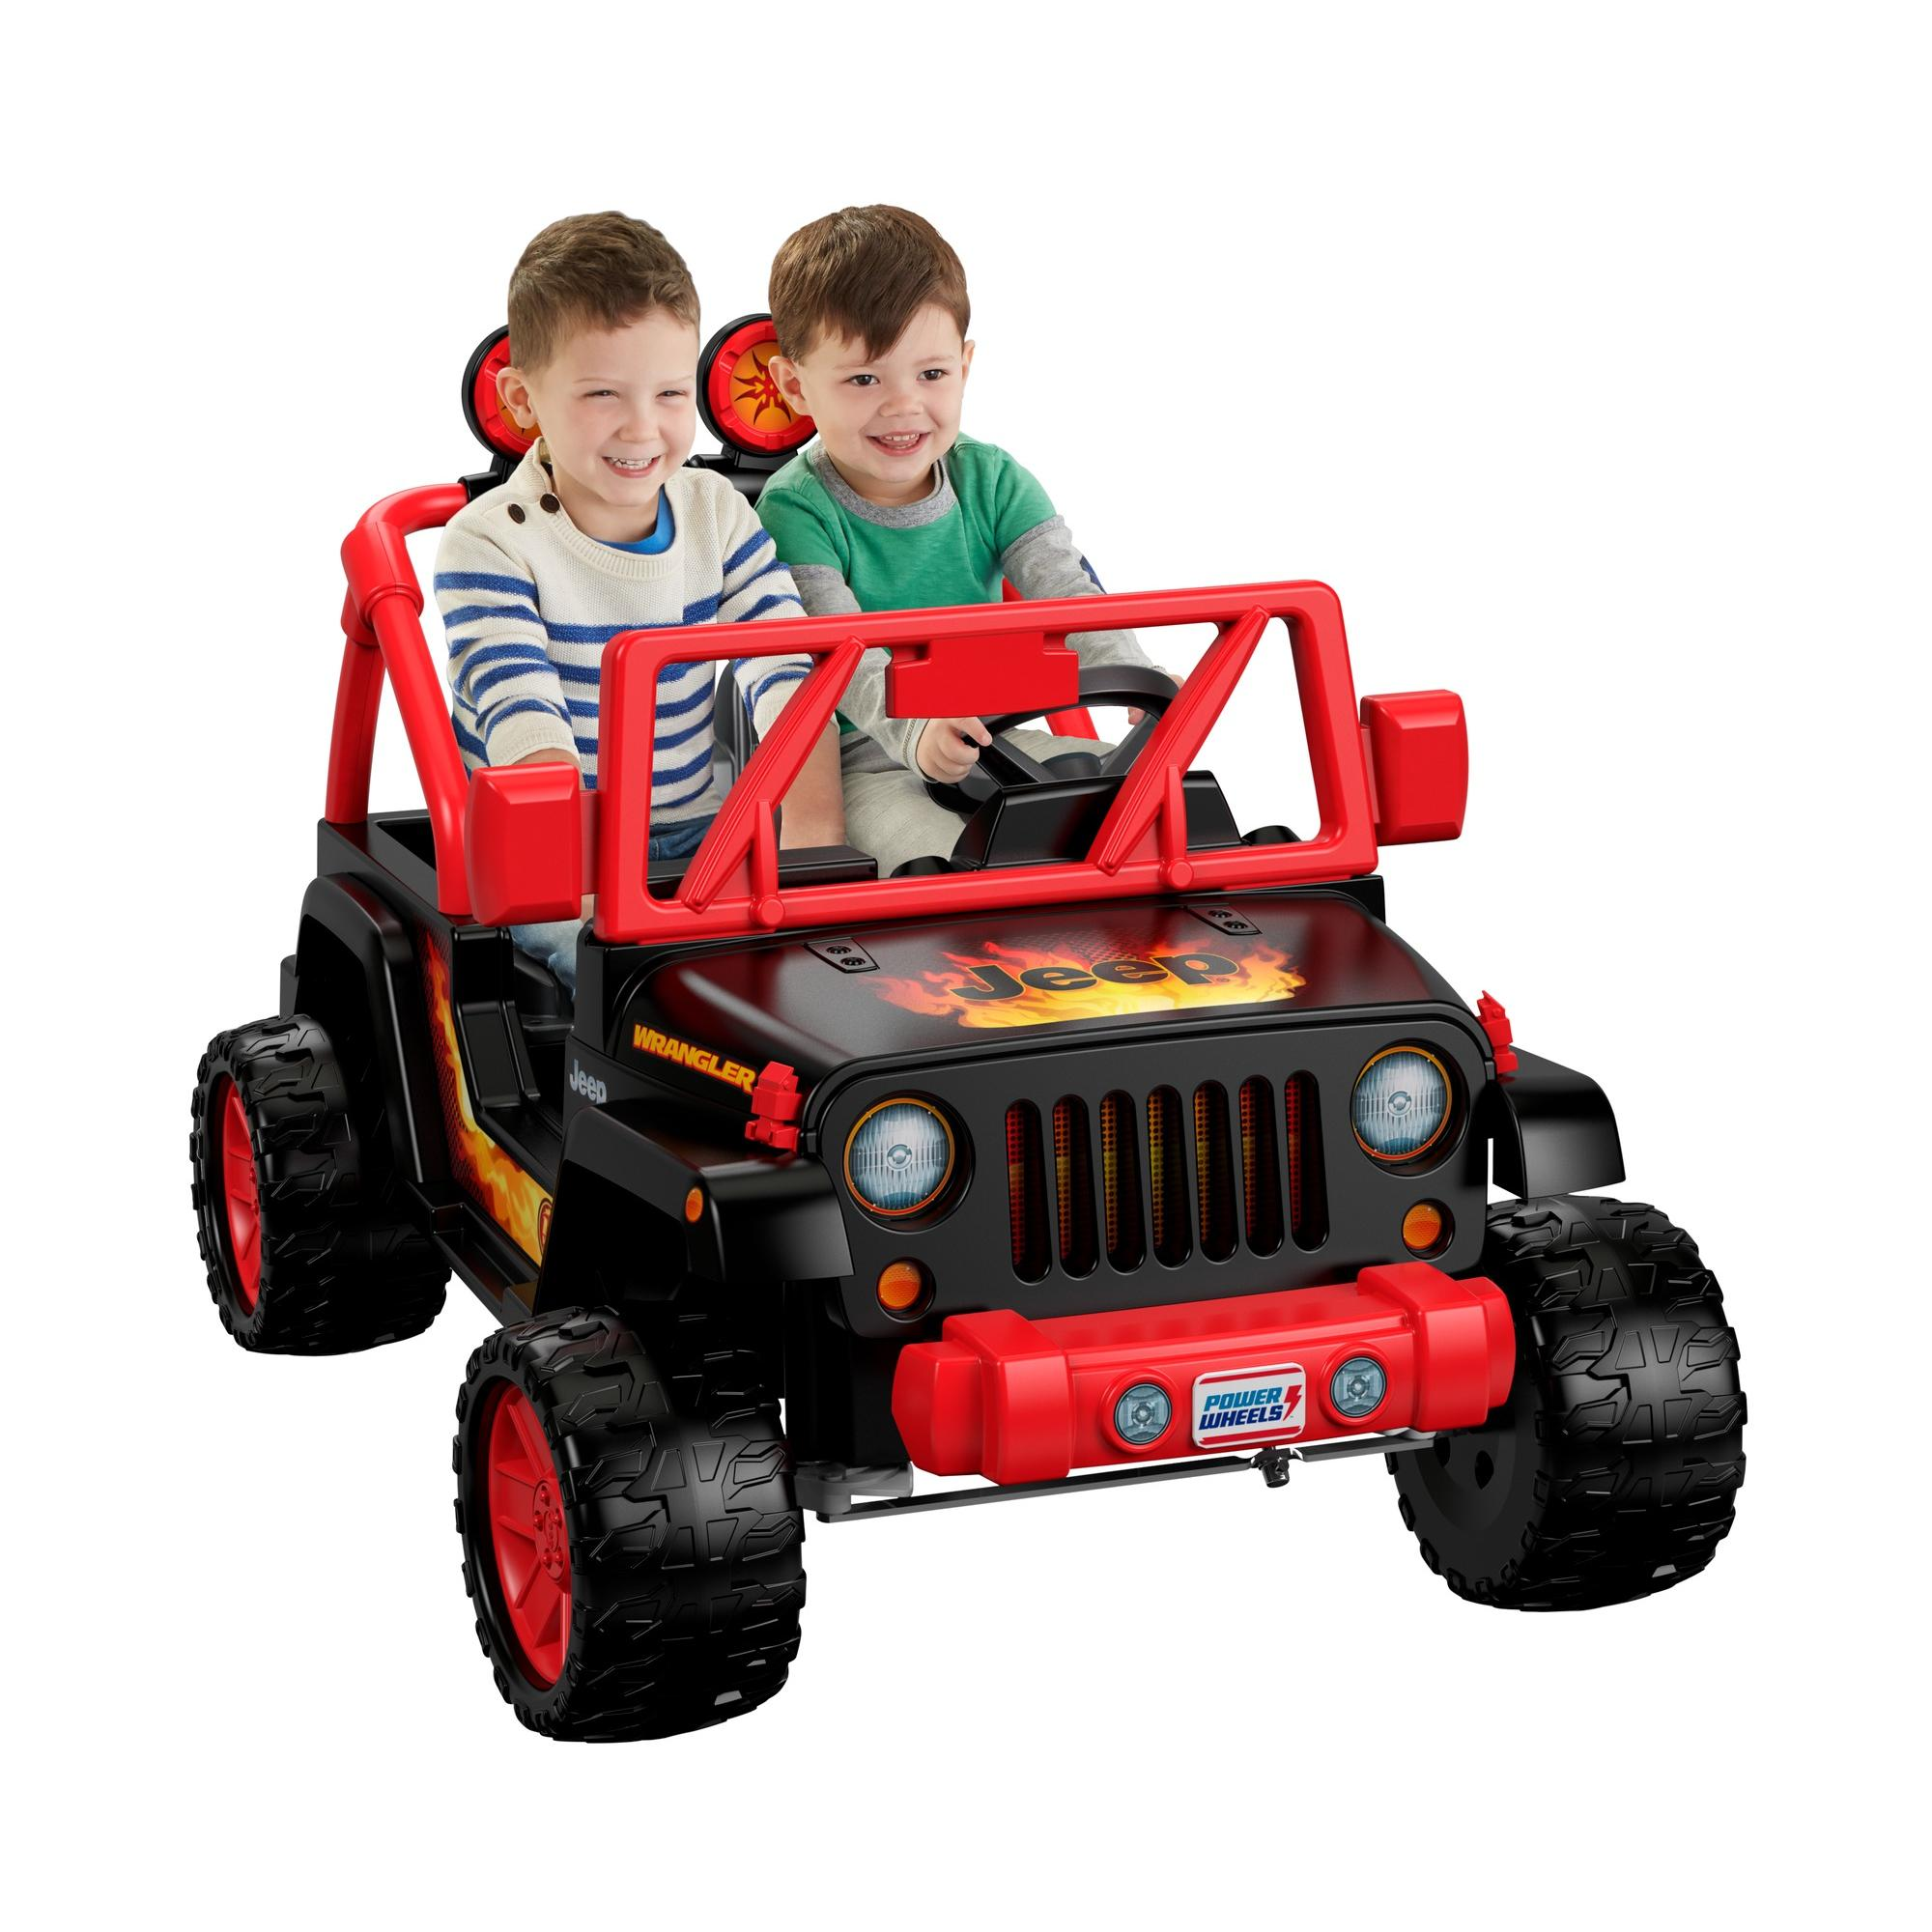 Power Wheels Tough Talking Jeep Wrangler Ride-On Vehicle by Fisher-Price